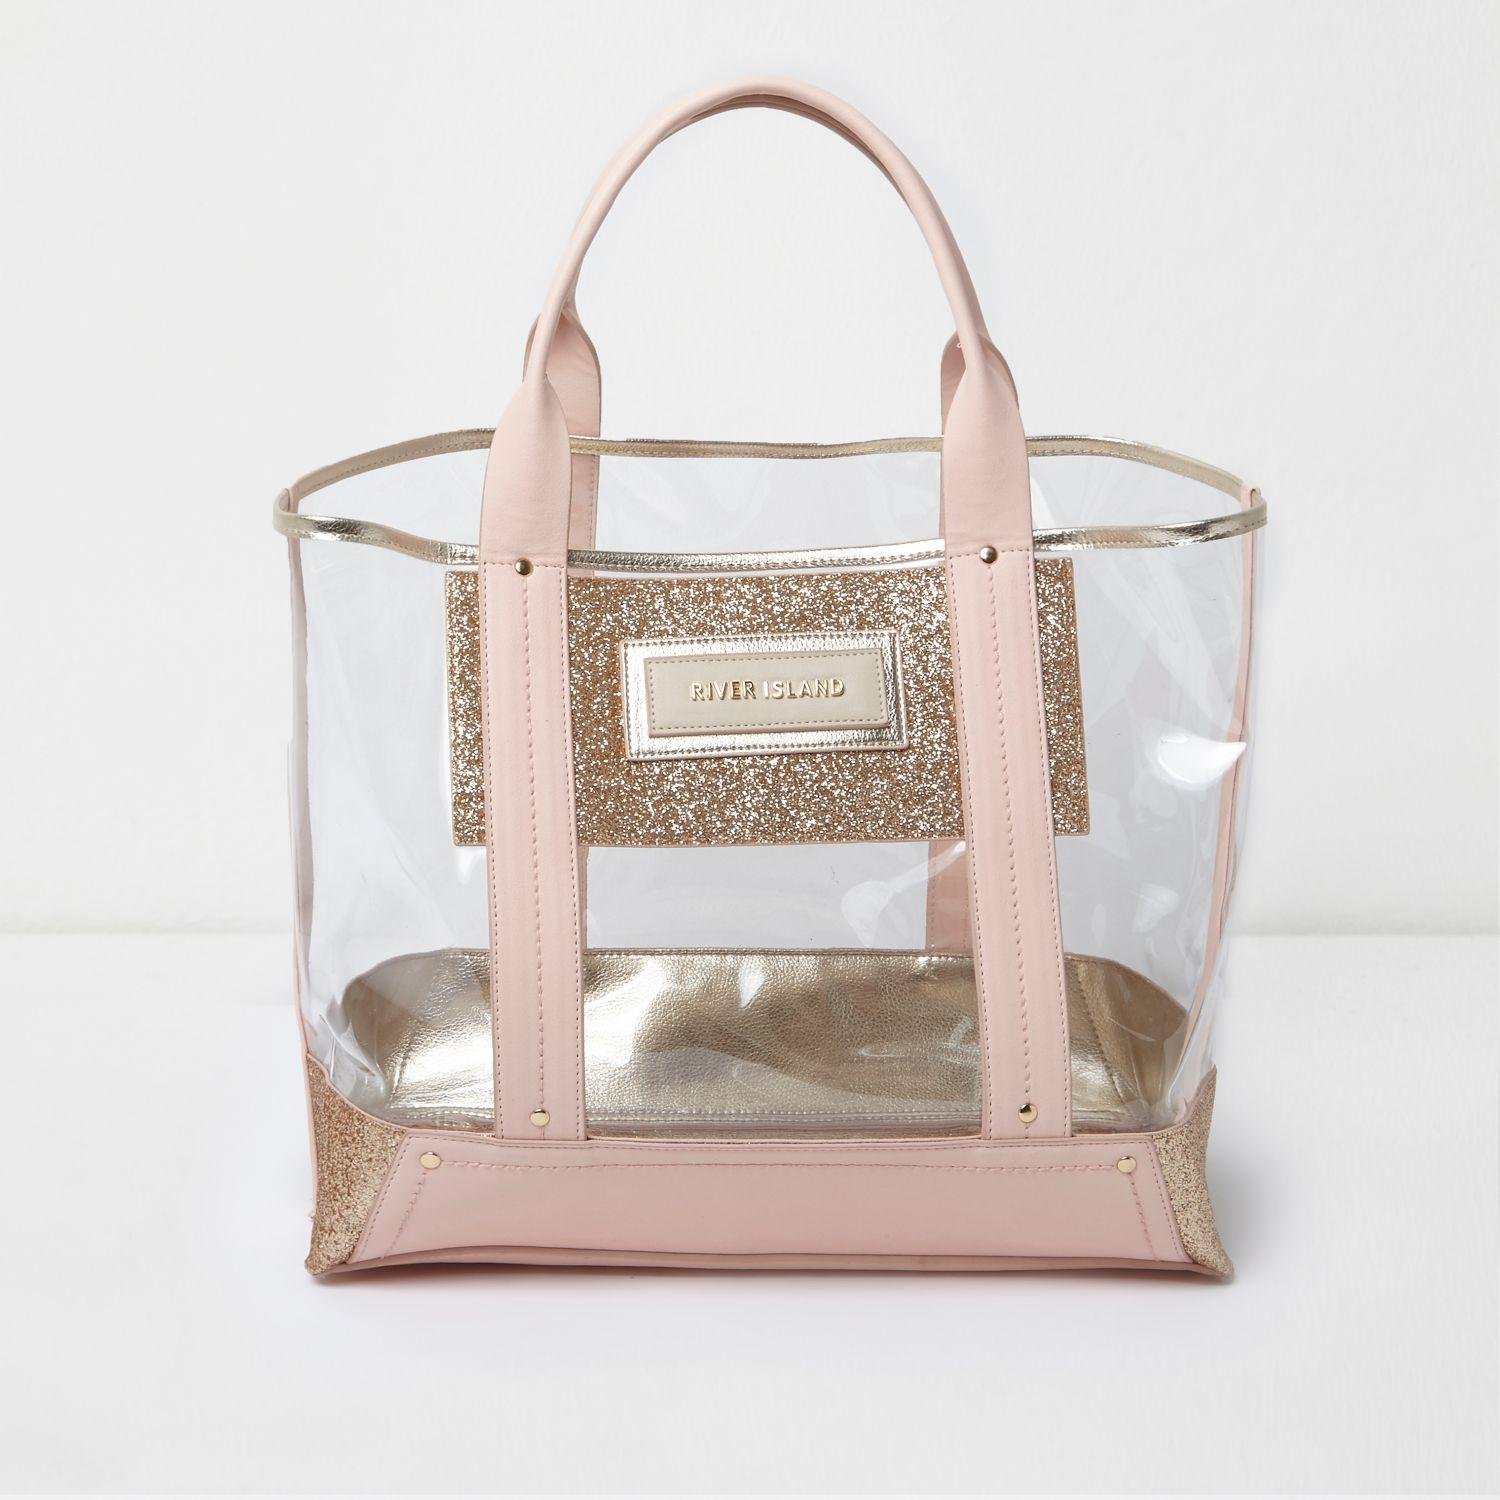 River Island Tote Bag Pink